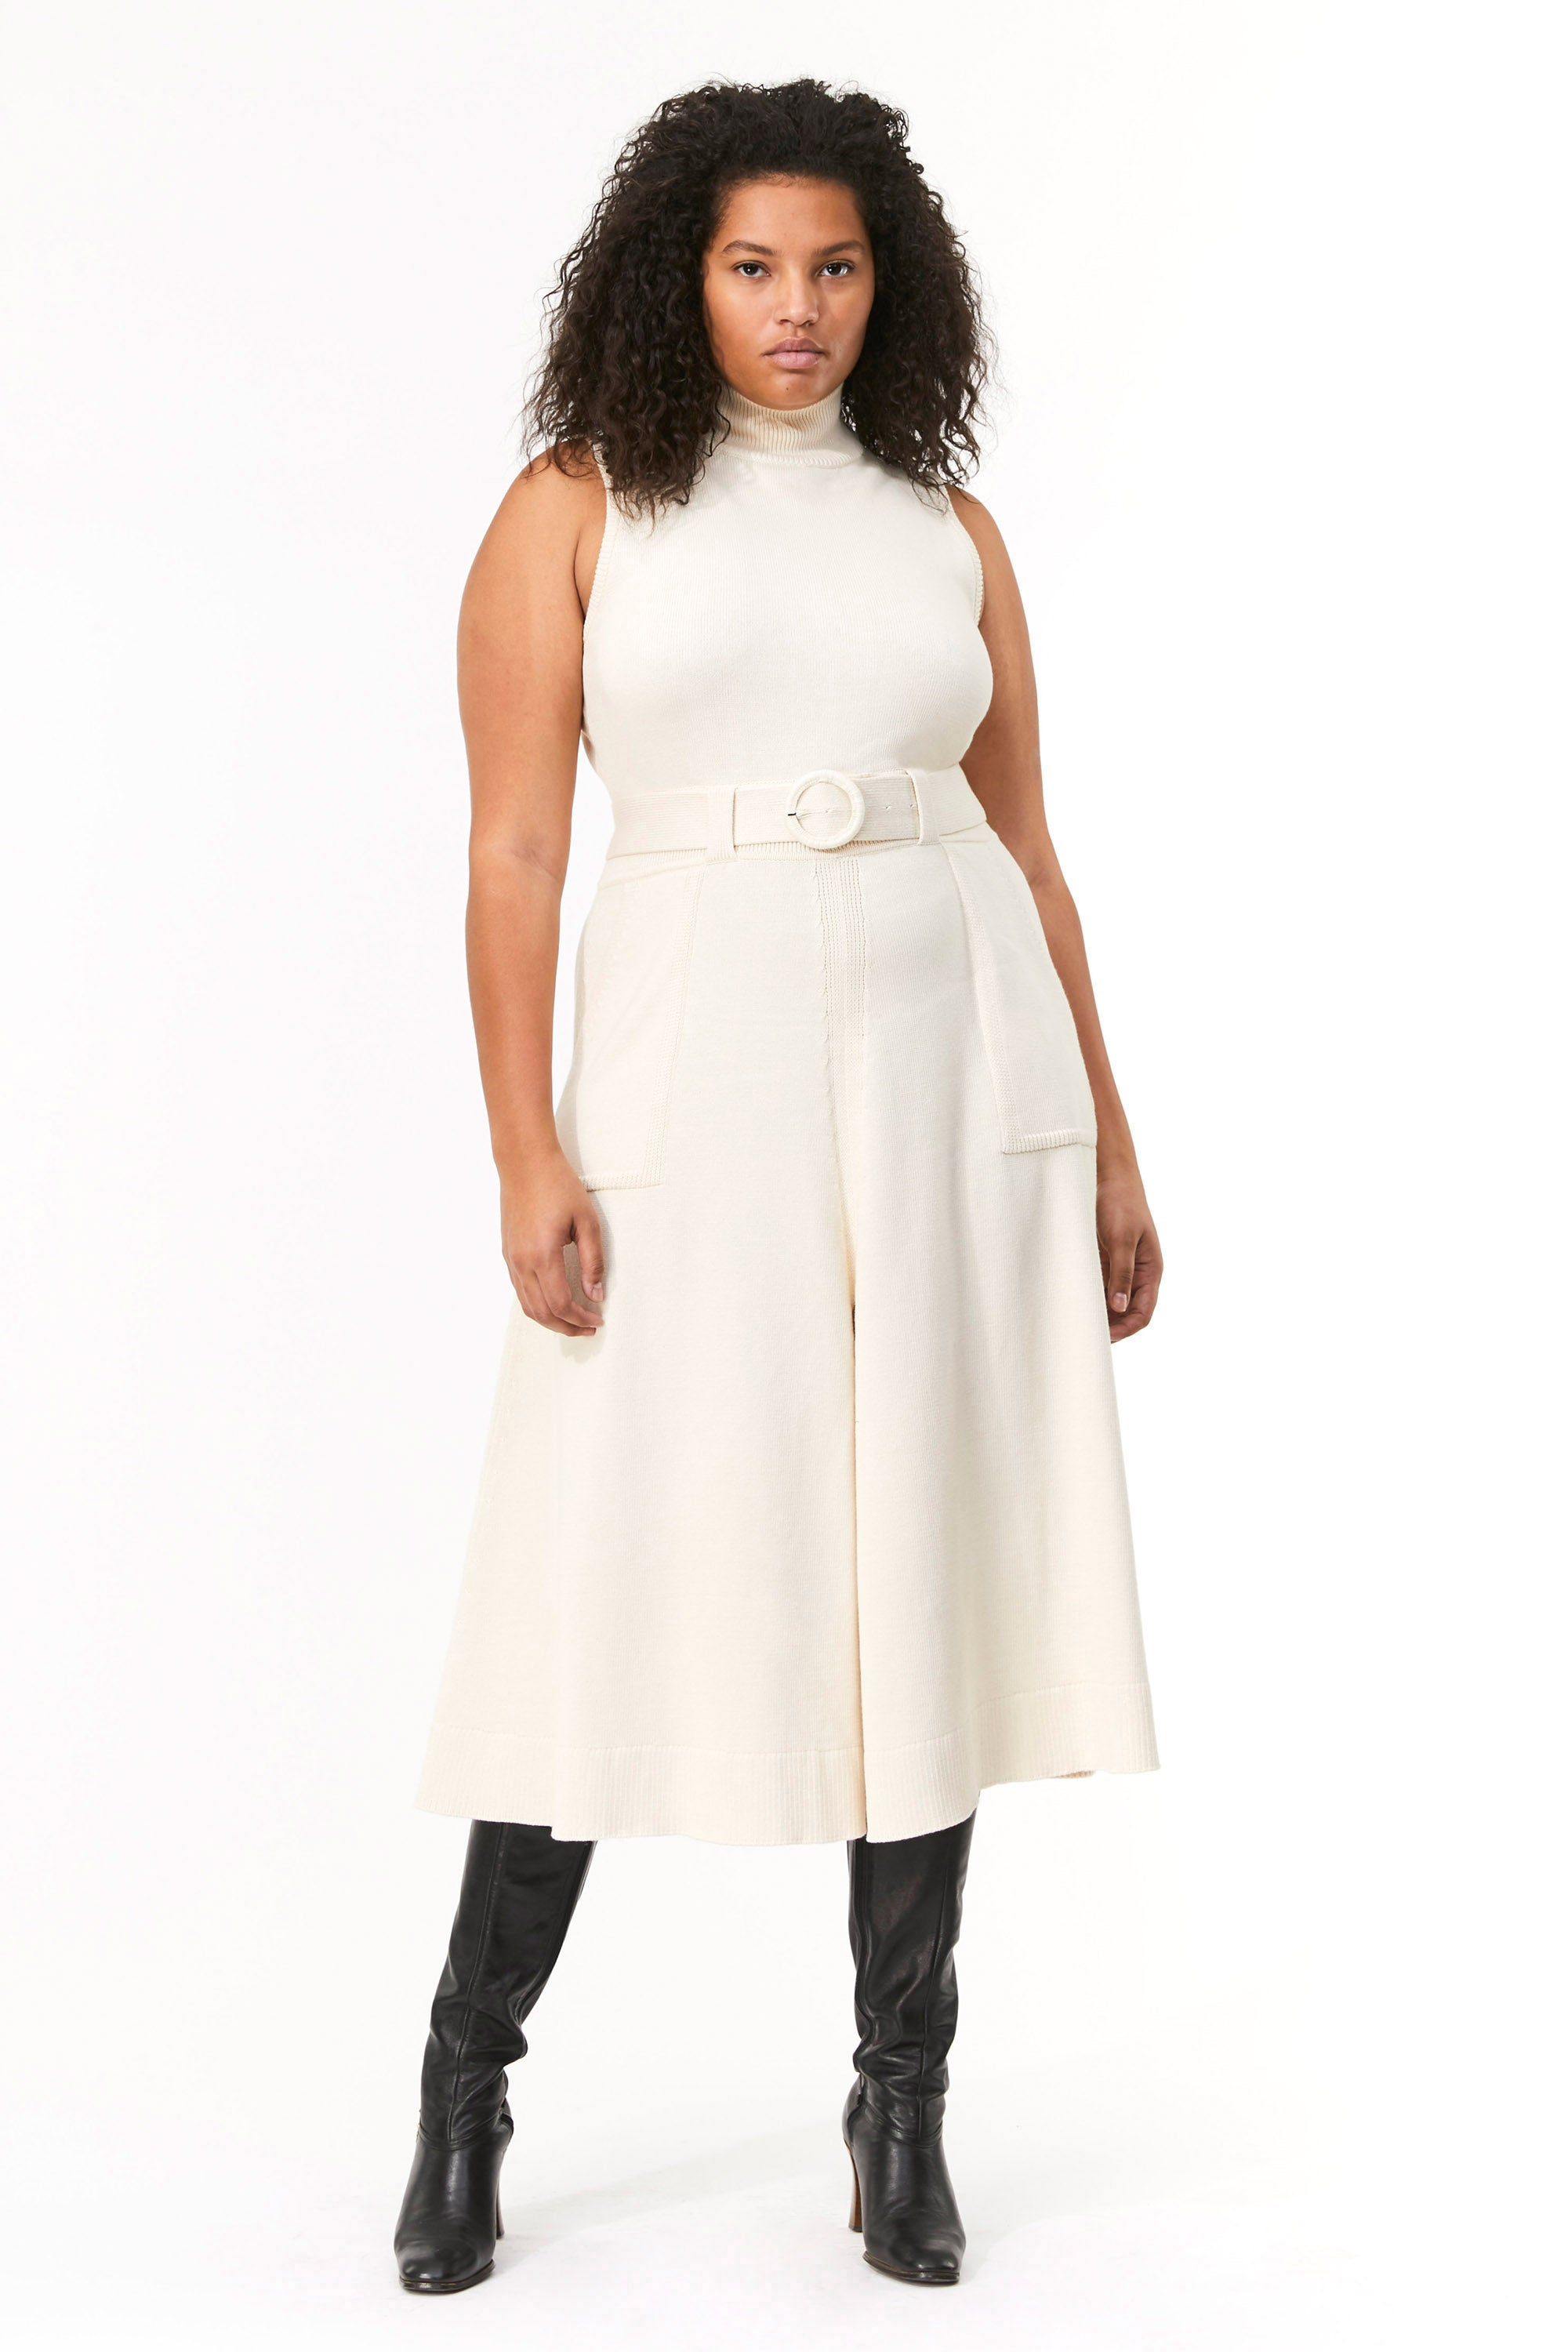 Mara Hoffman Extended Ivory Elle Dress in organic cotton (front)